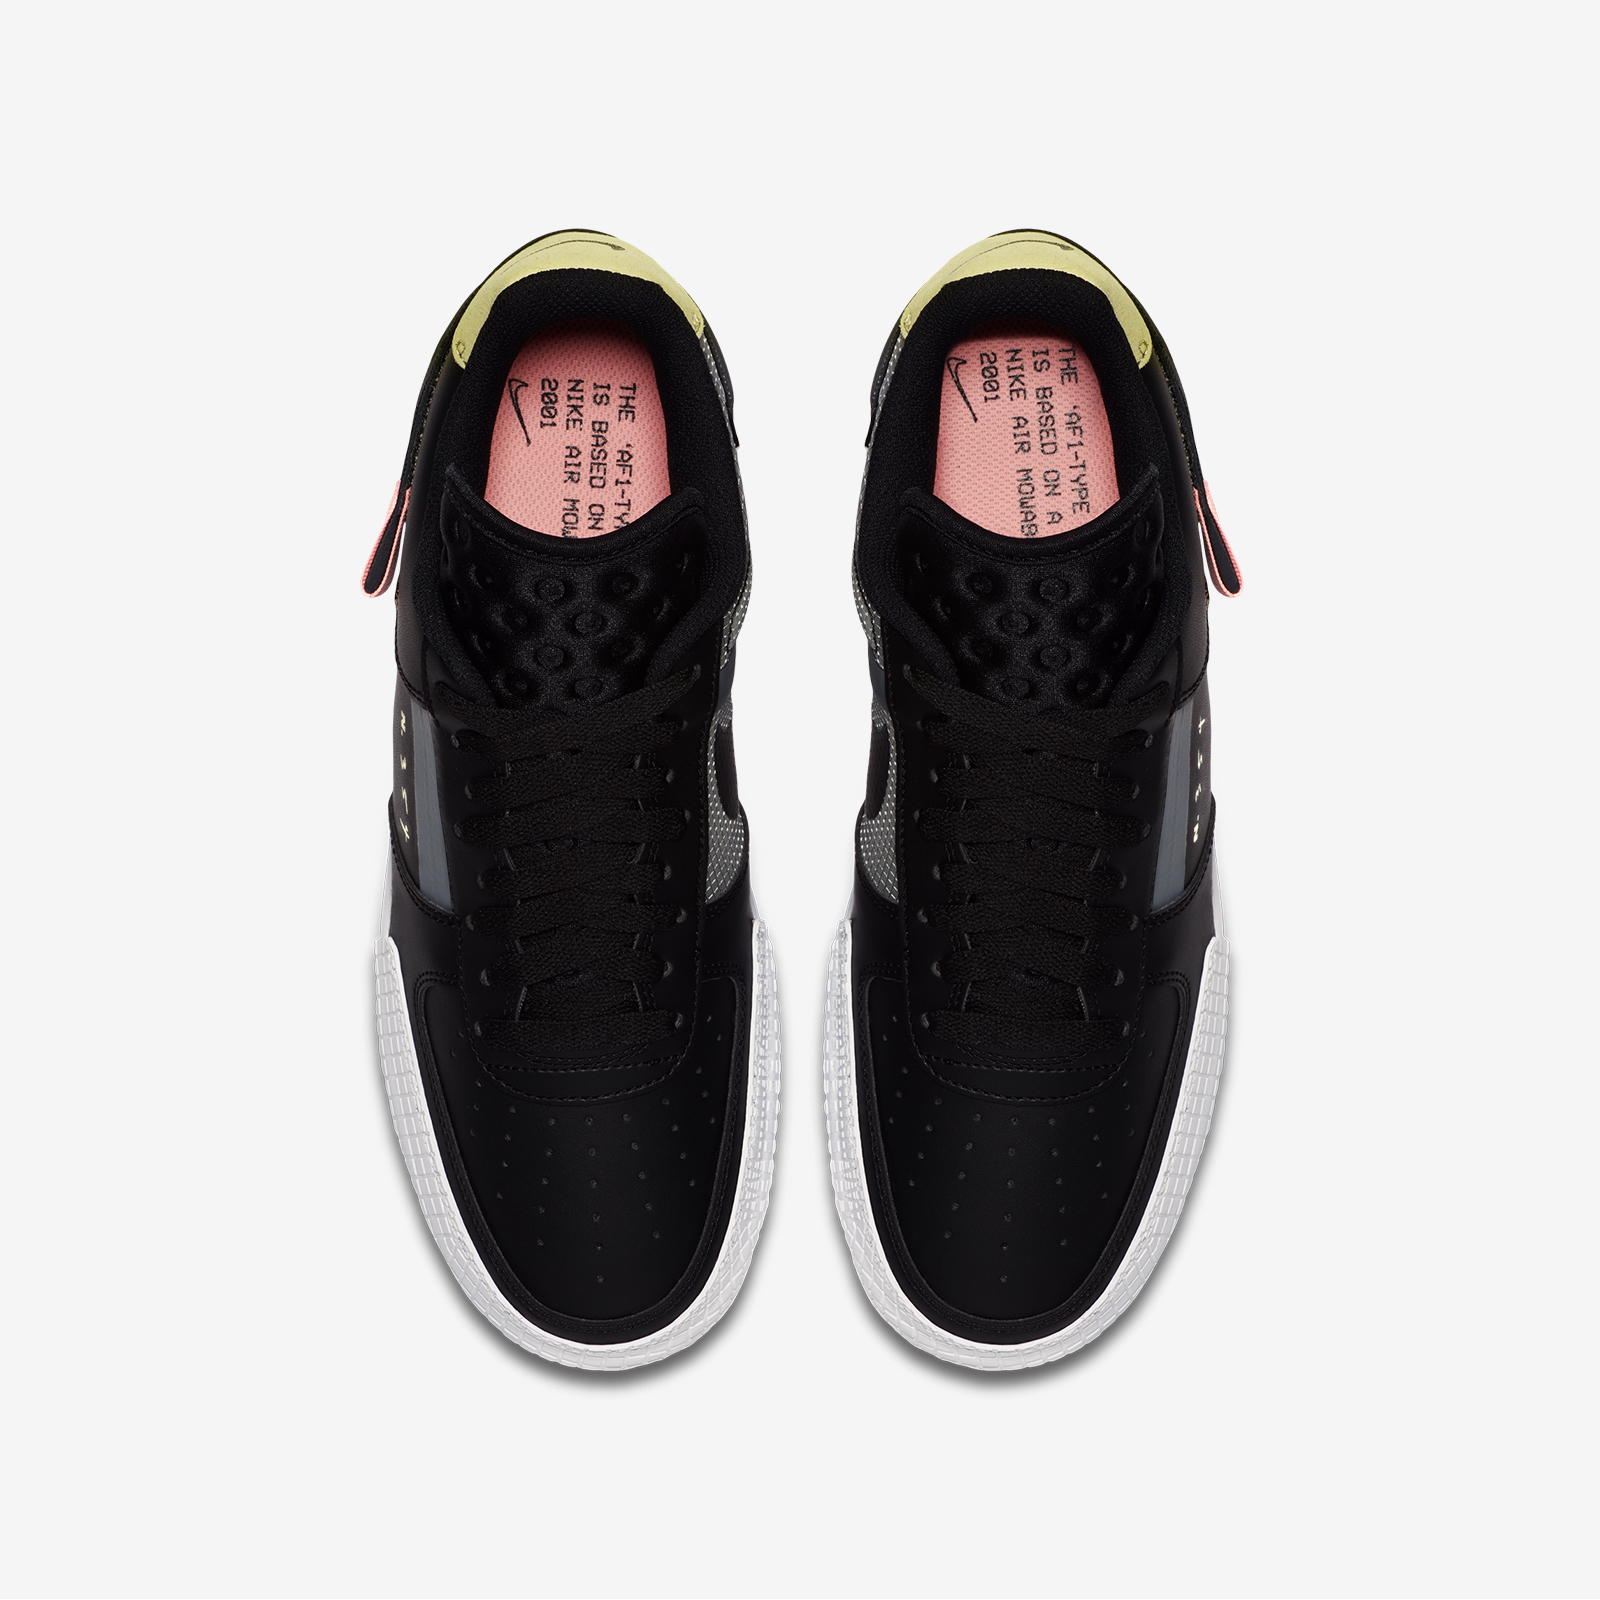 CI0054 001 Nike Air Force 1 Type Black 5